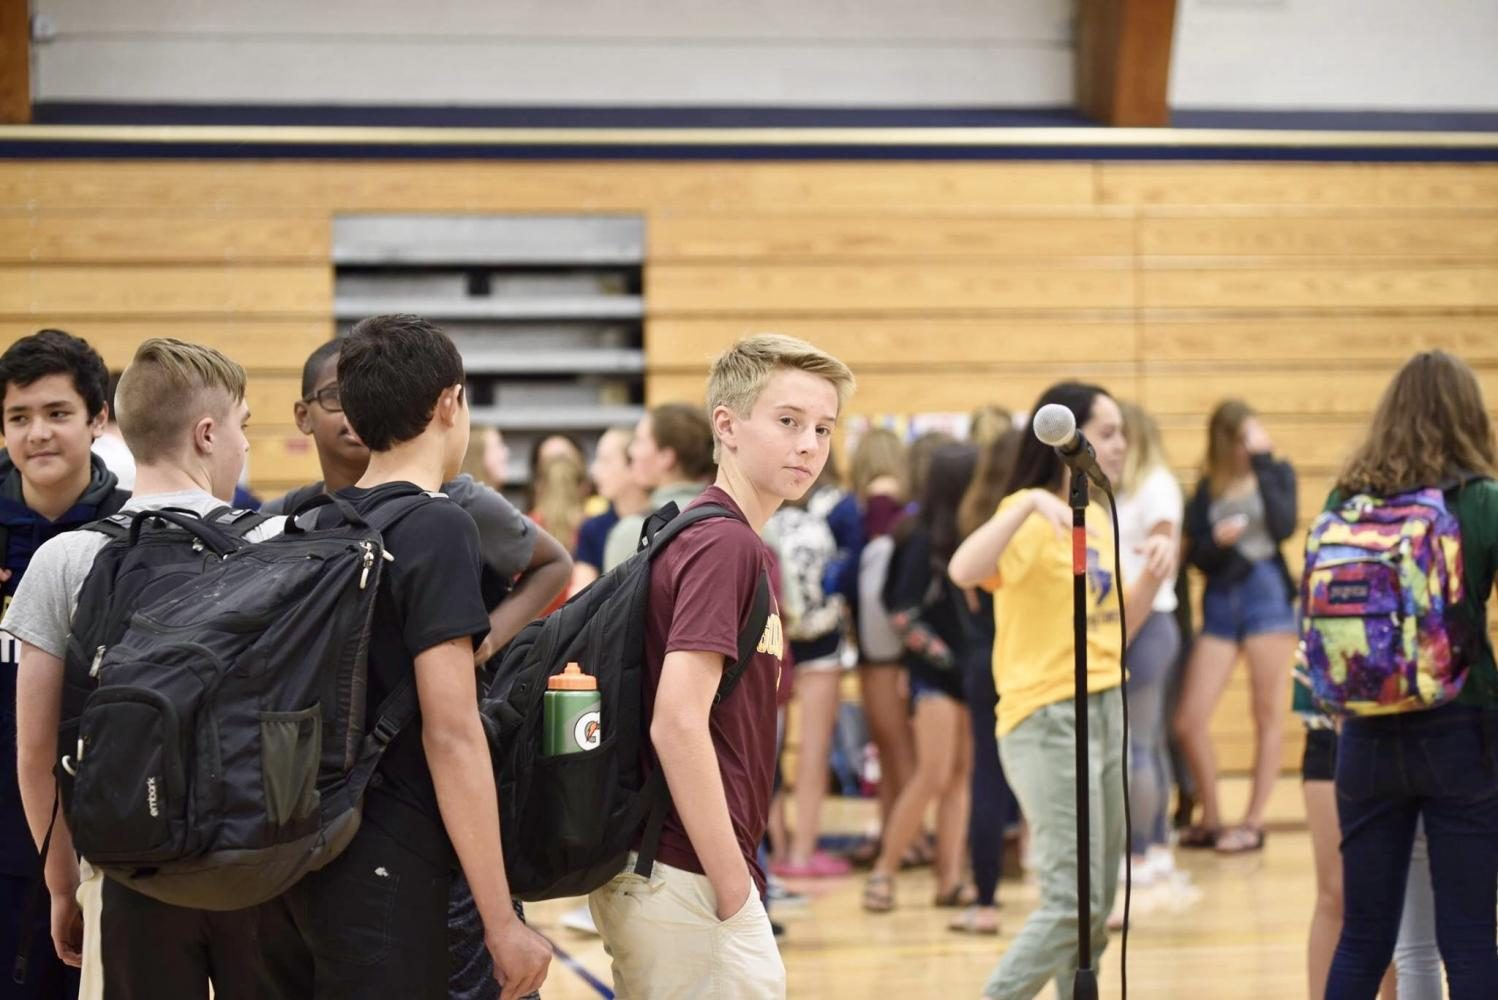 9th graders gathered in Briggs Gymnasium on Sept. 11 for the US Student Clubs Fair.